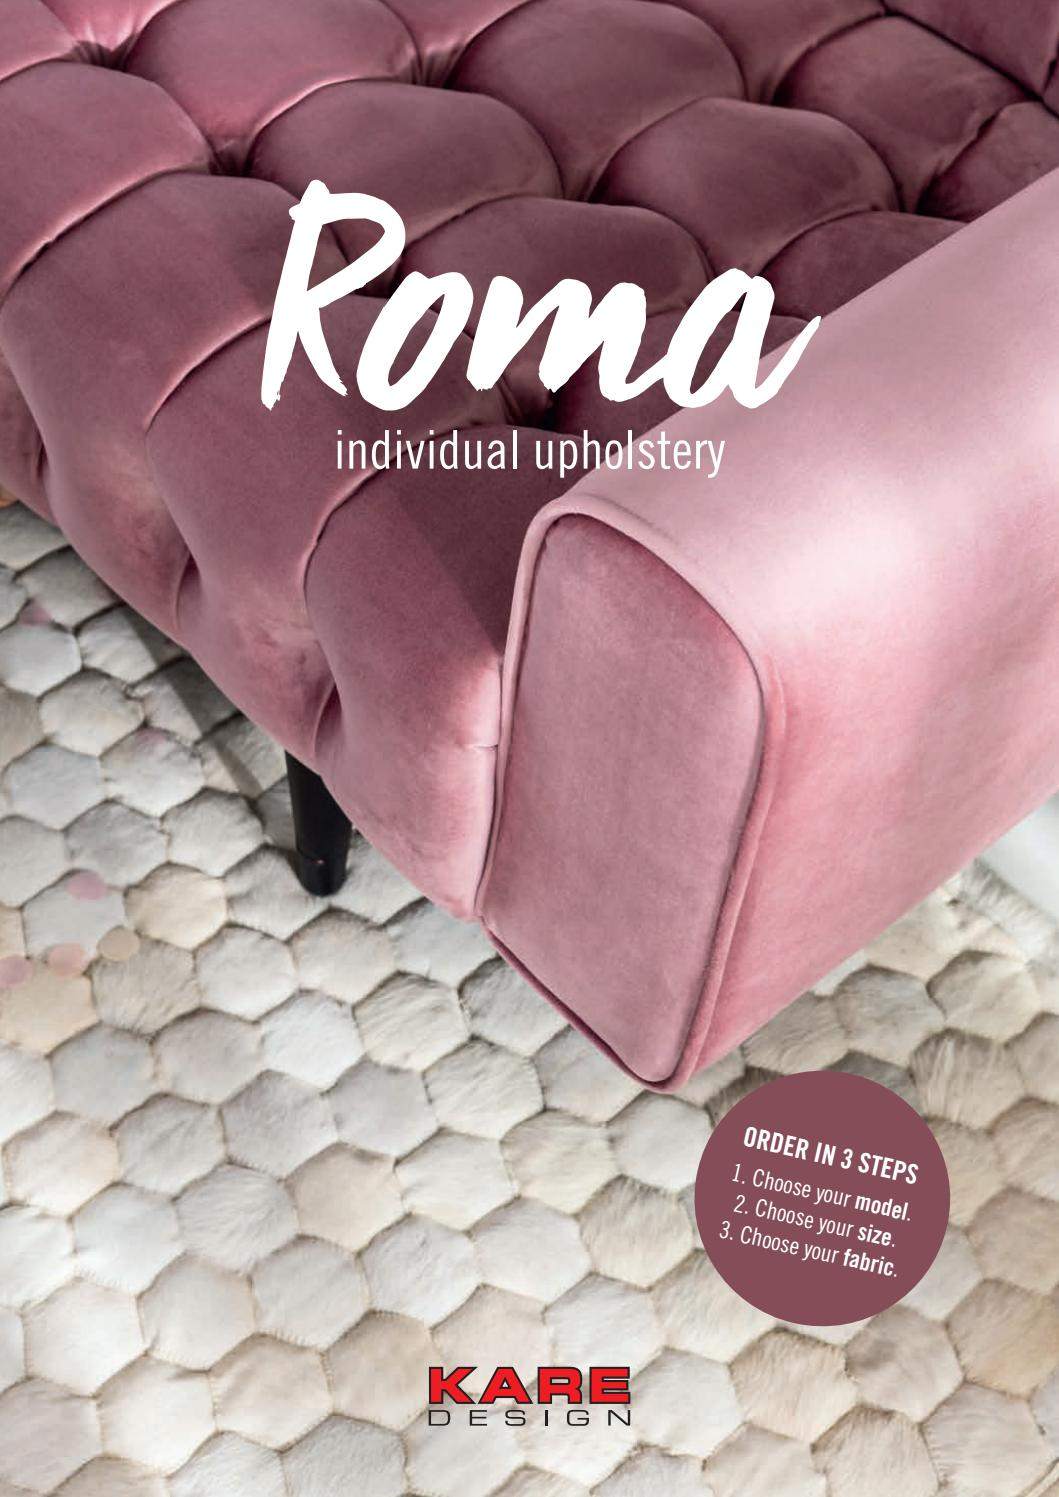 Mutoni Möbel Sofa Sessel Betten Design Katalog 2018 By Toni Mulas Issuu